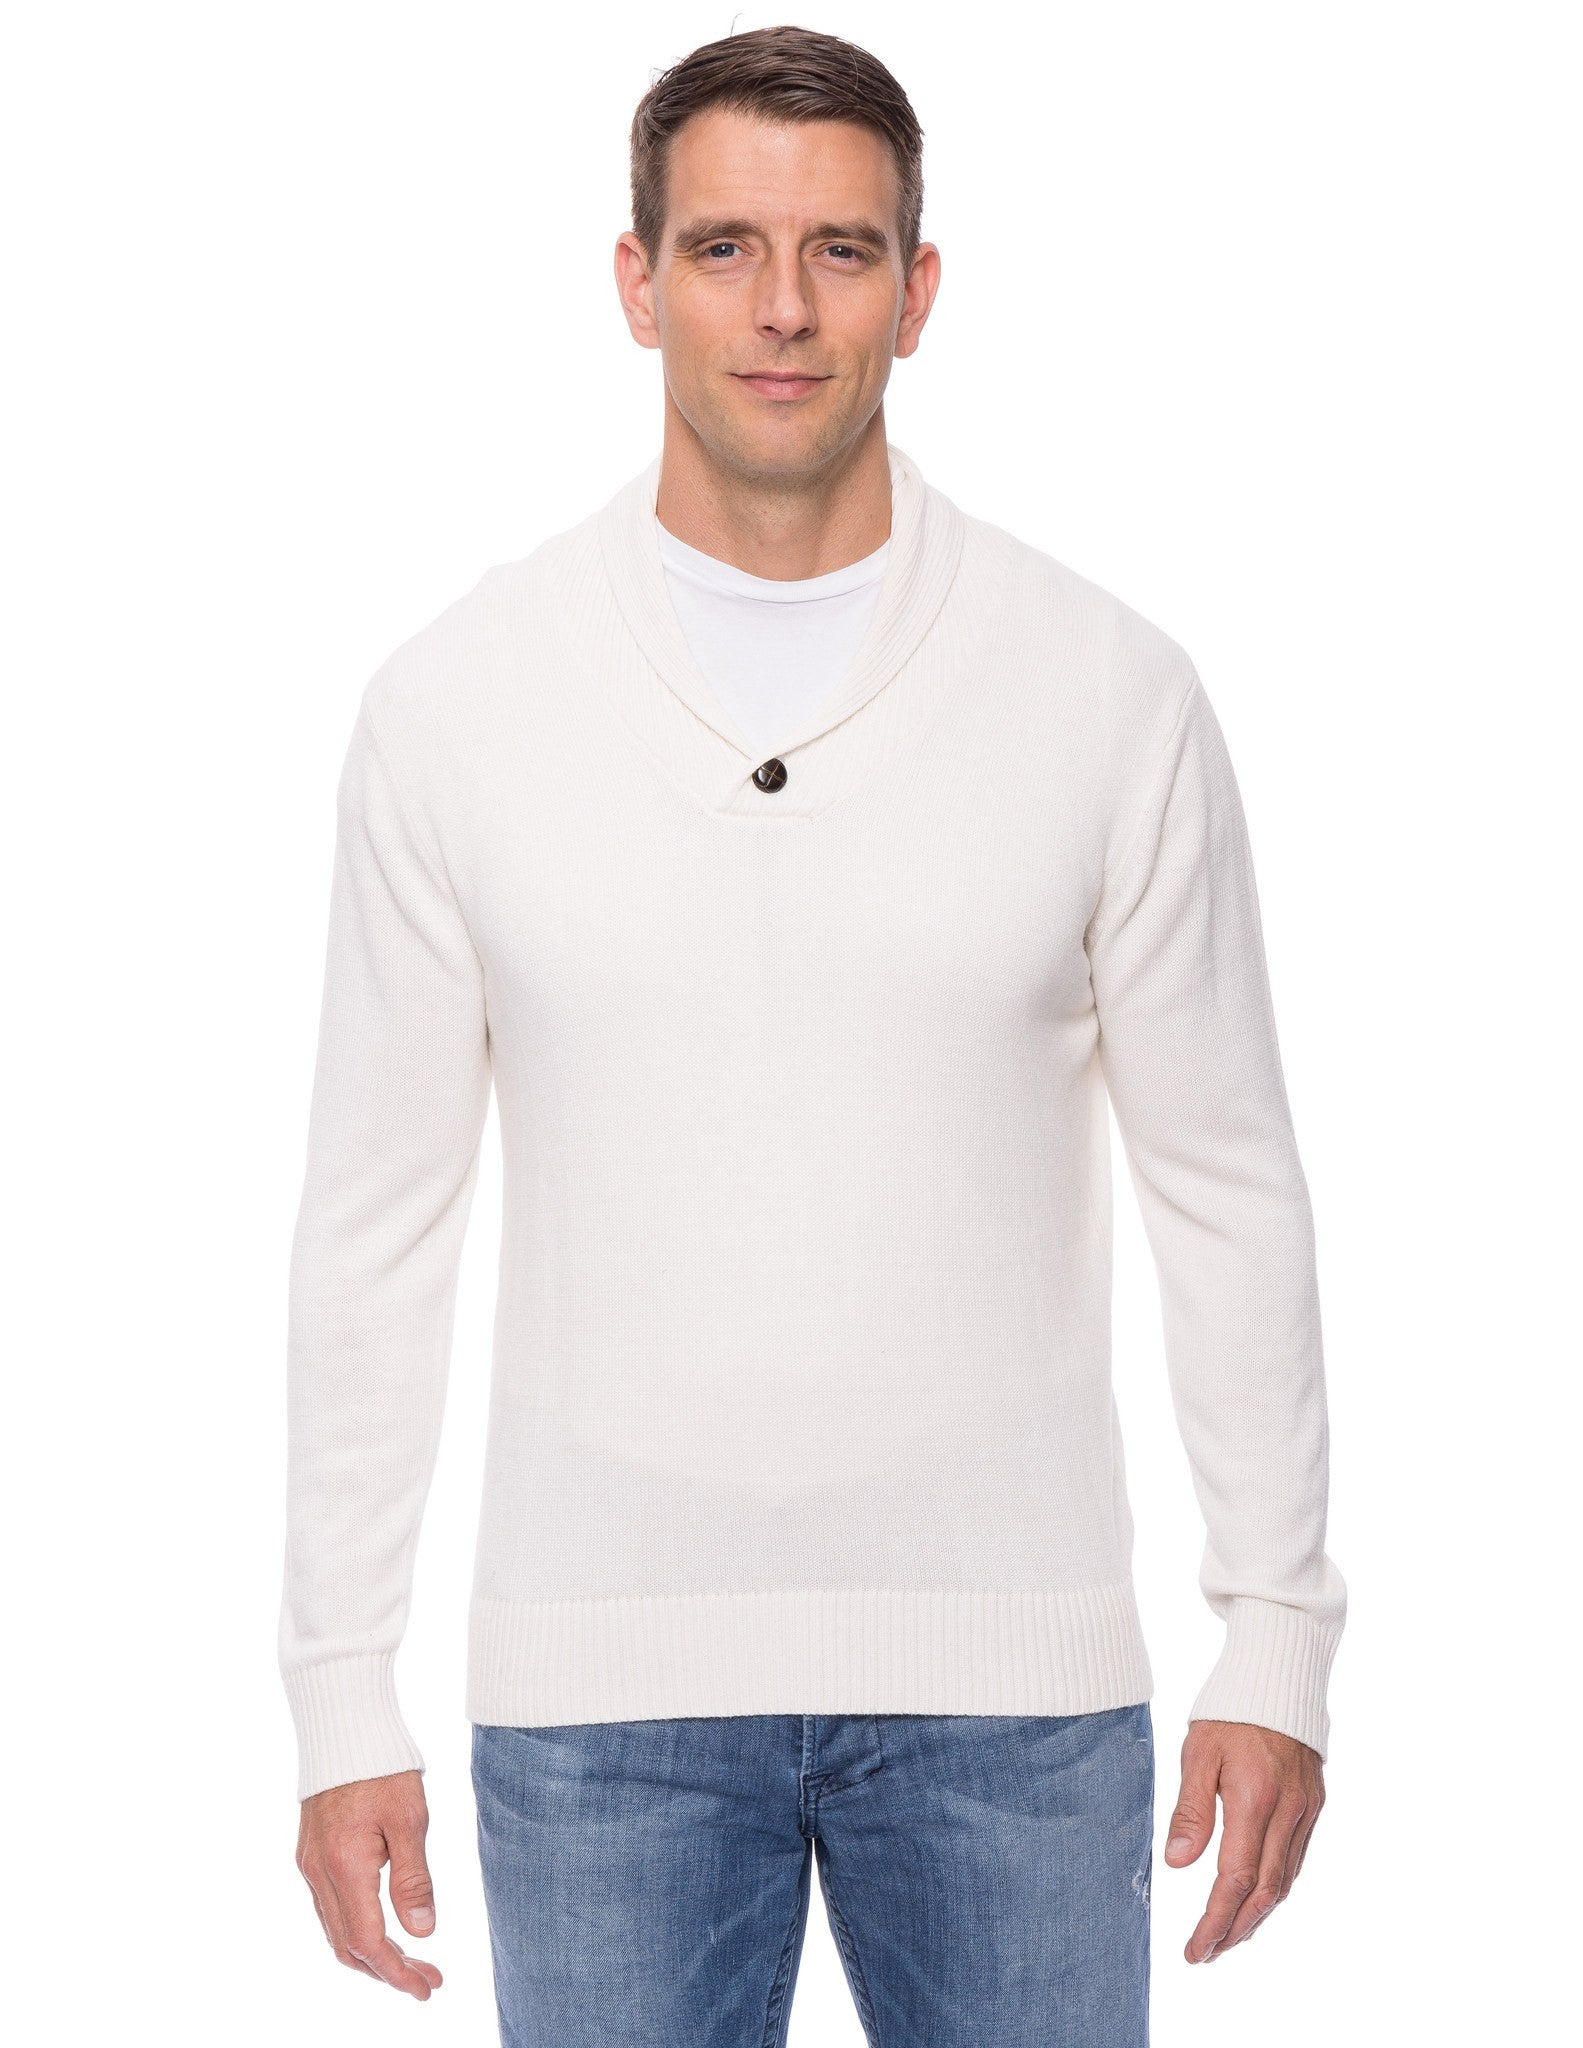 Cashmere Blend Shawl Collar Pullover Sweater - Ivory